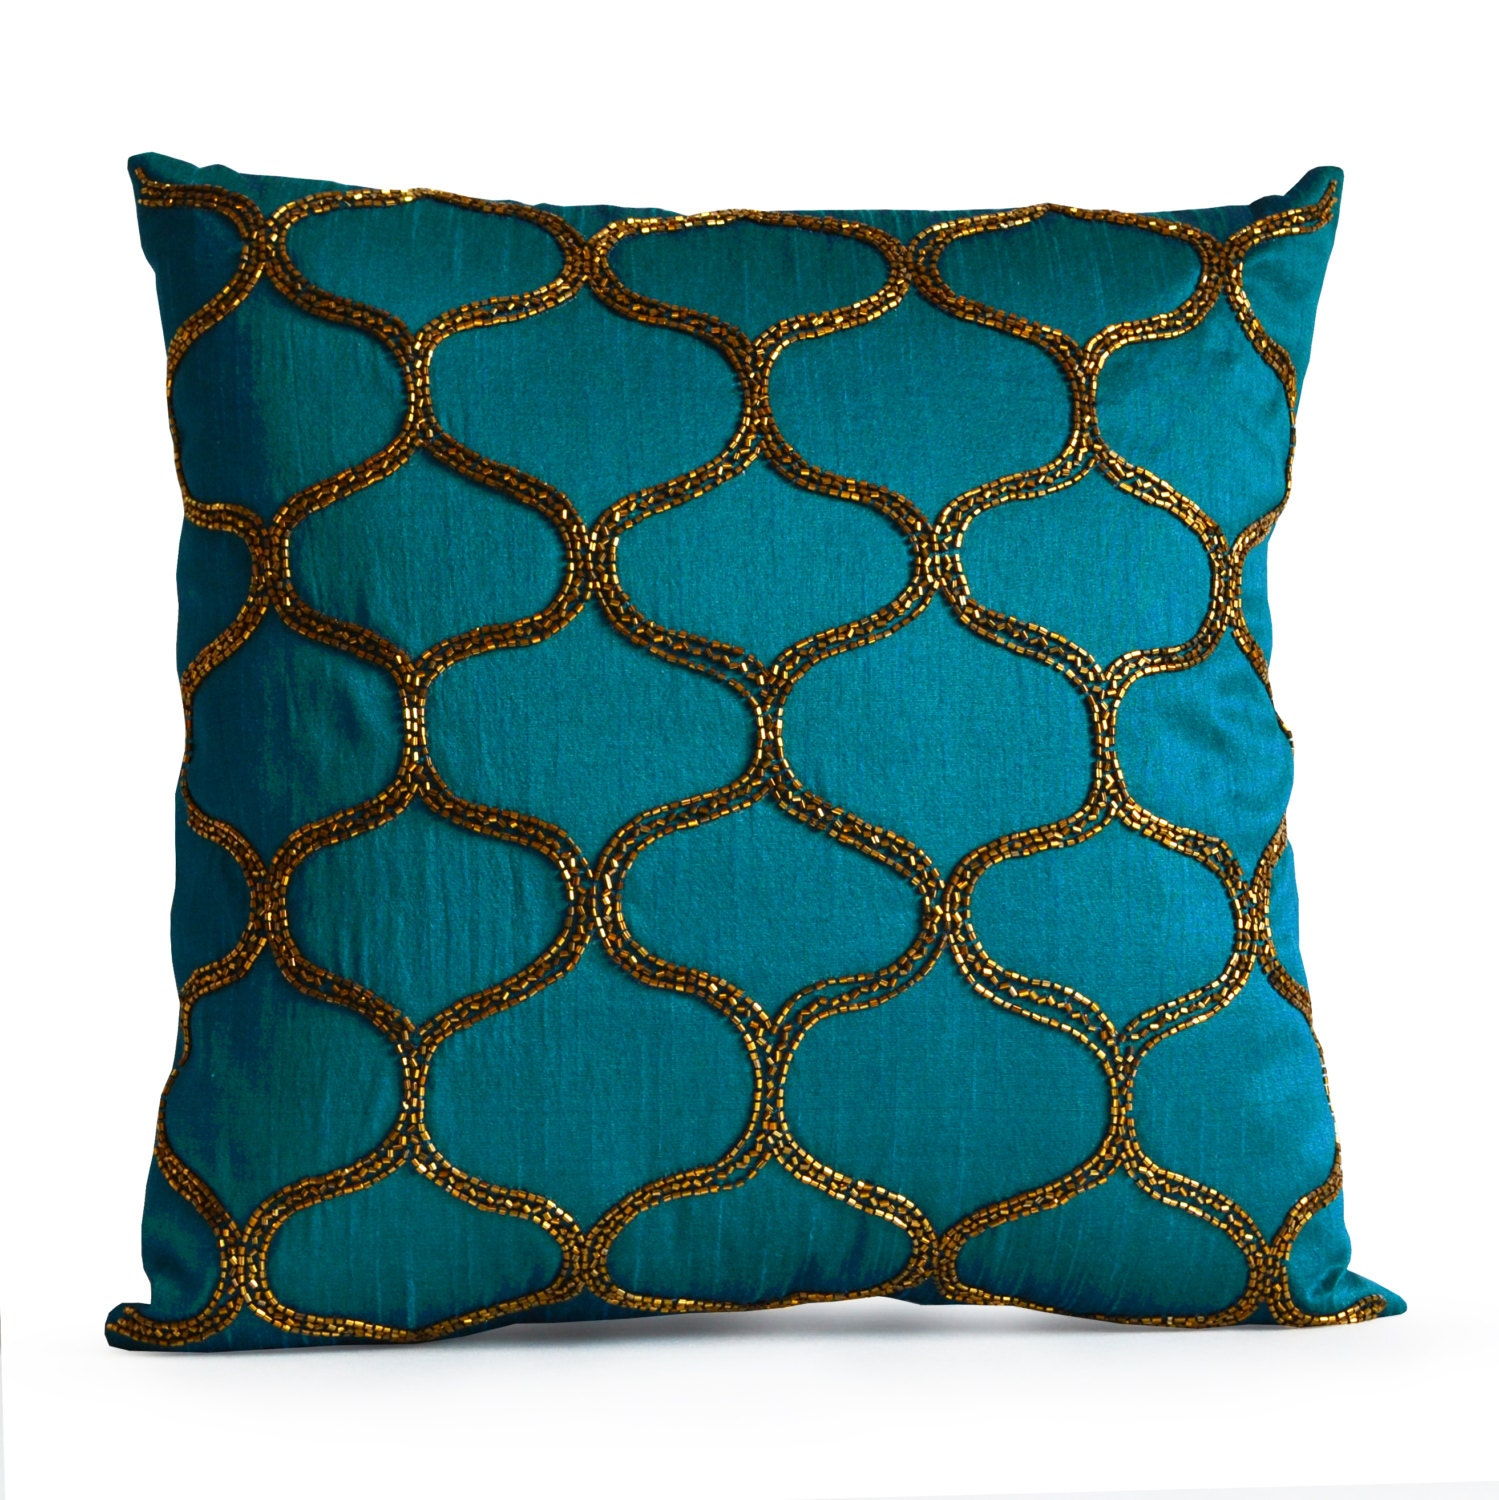 Modern Teal Decorative Throw Pillow : Designer Pillow Decorative Teal Pillow Cover Turquoise